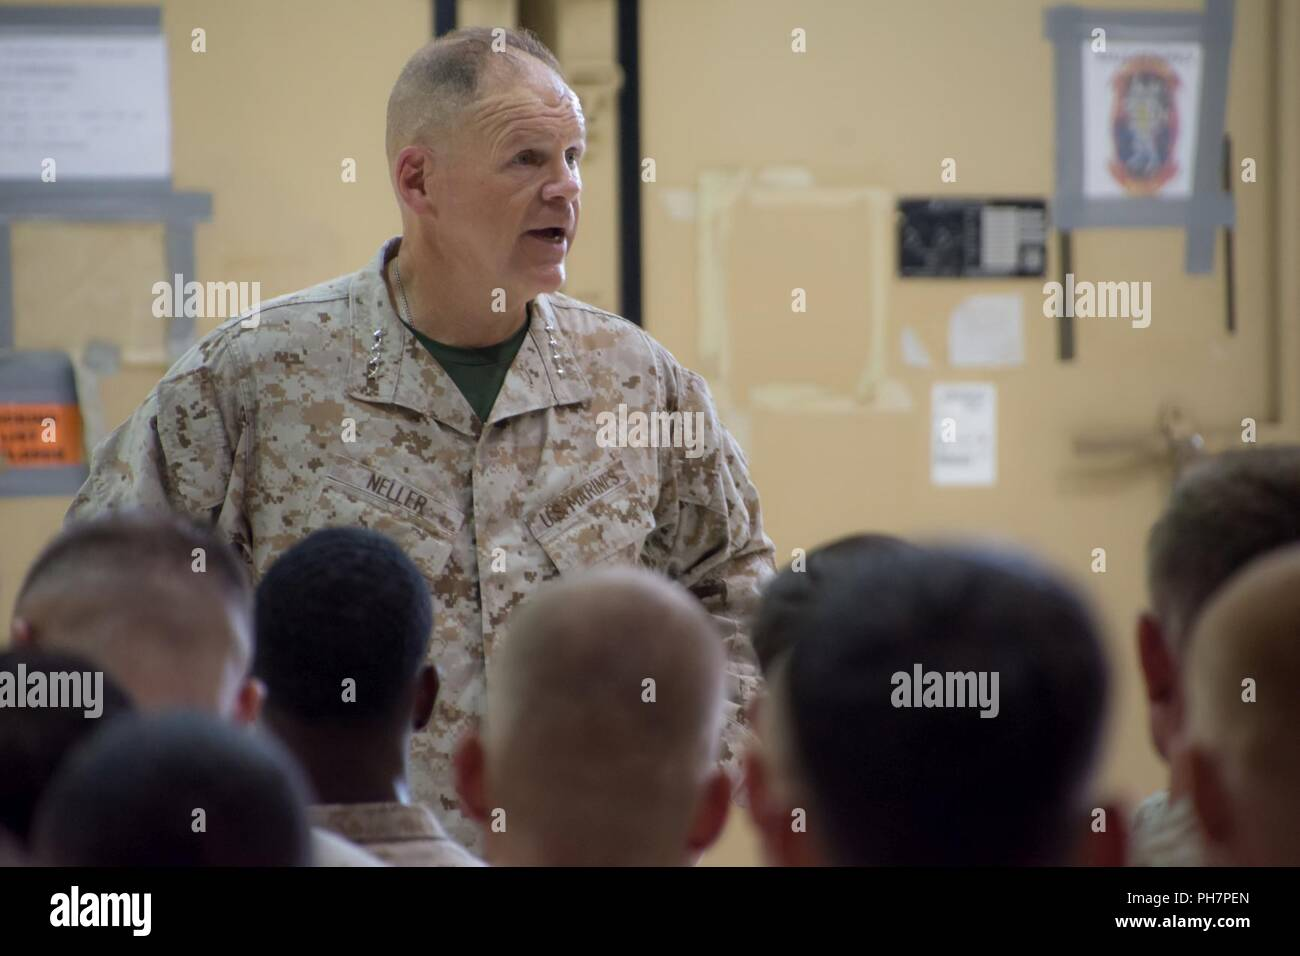 The 37th Commandant of the Marine Corps, Gen. Robert Neller, visits Marines deployed to Al Udeid Air Base, Qatar, June 26, 2018. VMAQ-2, the last squadron of EA-6B Prowler aircraft, is presently deployed here and will be deactivated in October 2018. Stock Photo